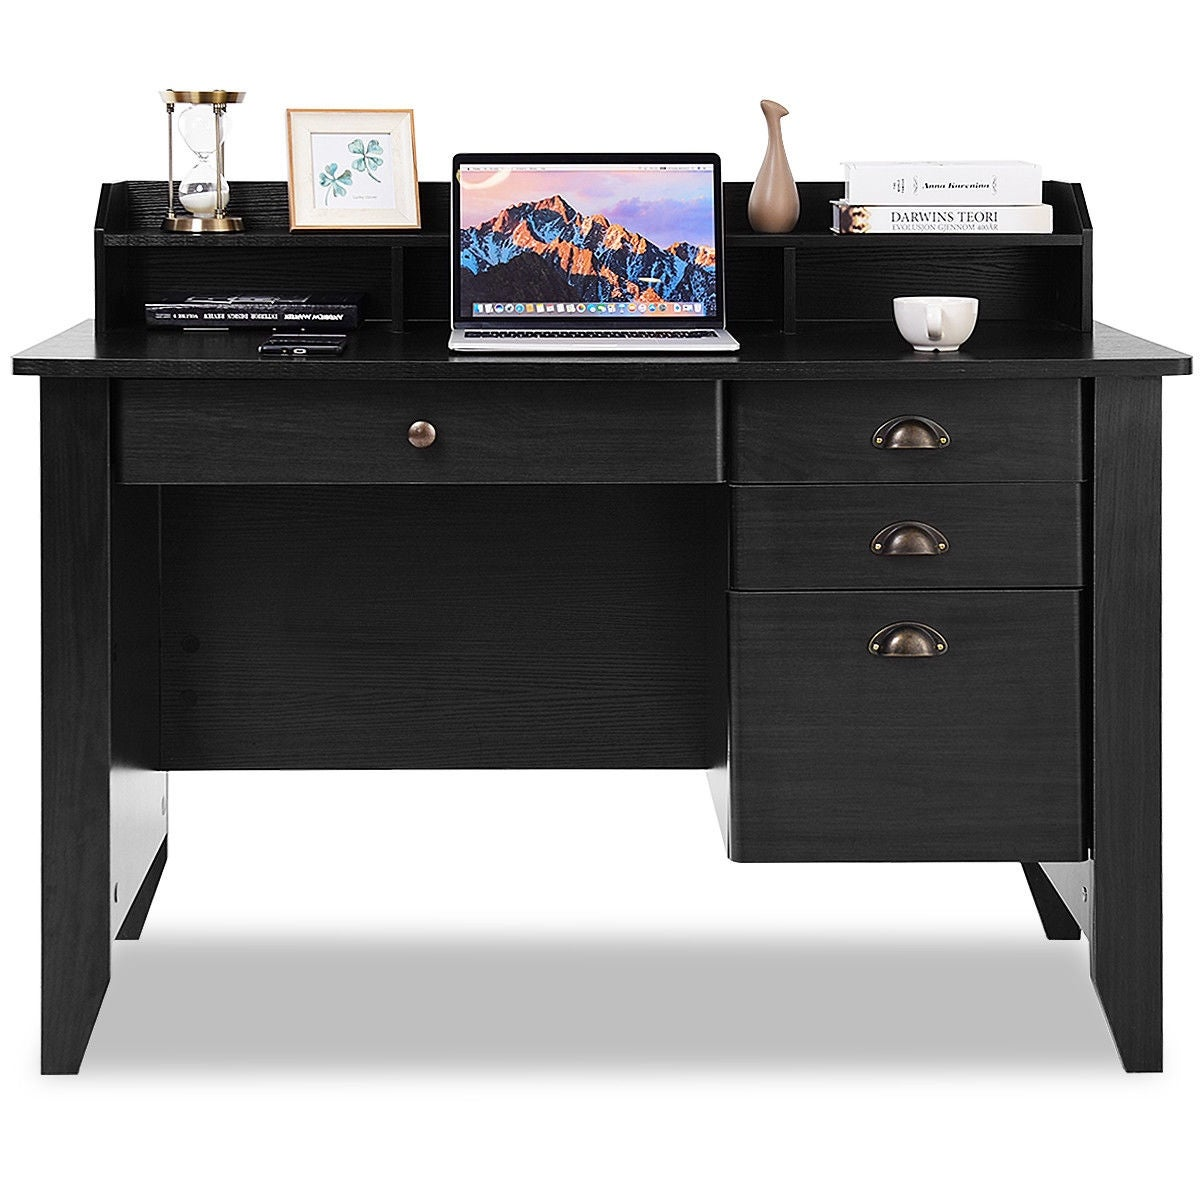 1463e111f9c0f Shop Costway Computer Desk PC Laptop Writing Table Workstation Student Study  Furniture Black - Free Shipping Today - Overstock - 15869396